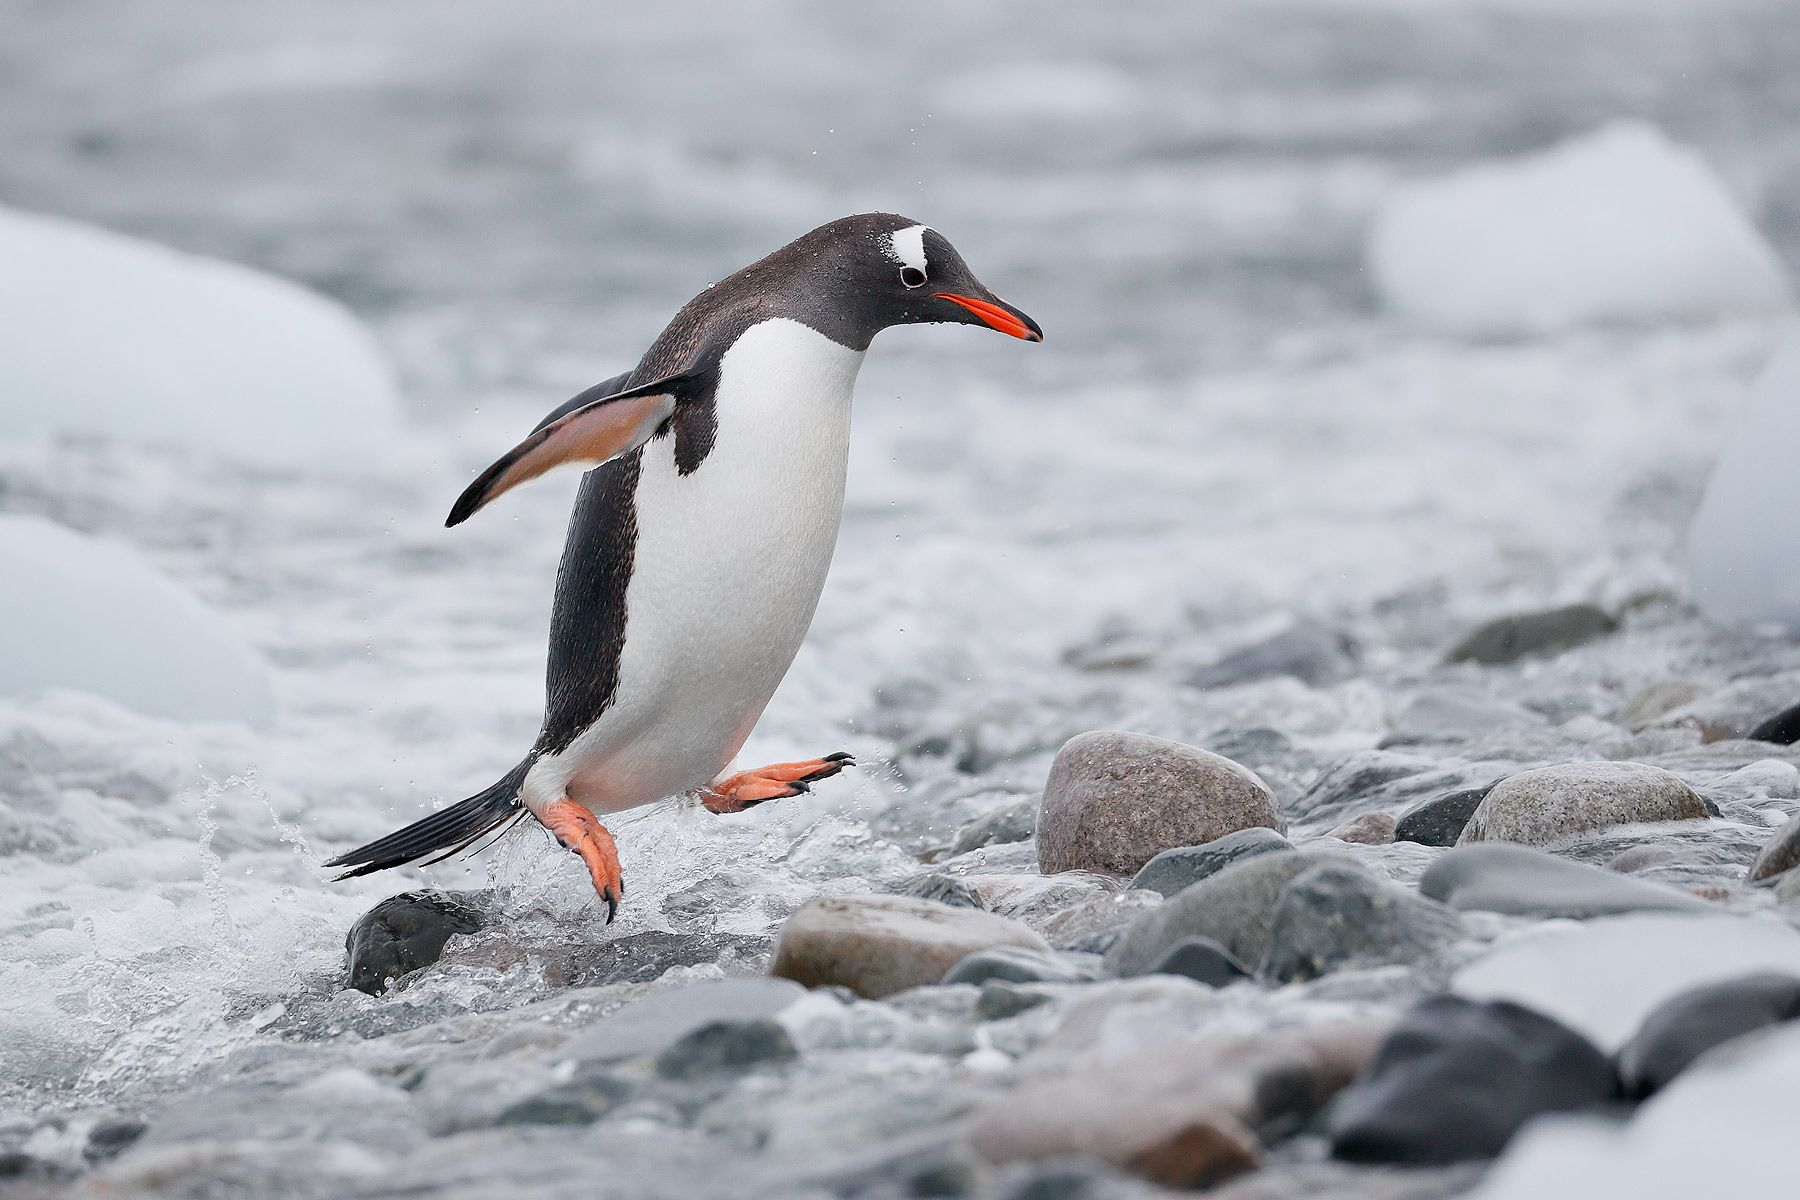 Gentoo-penguin-jumping-out-of-water_A3I9876-Cuverville-Island,-Antarctica.jpg